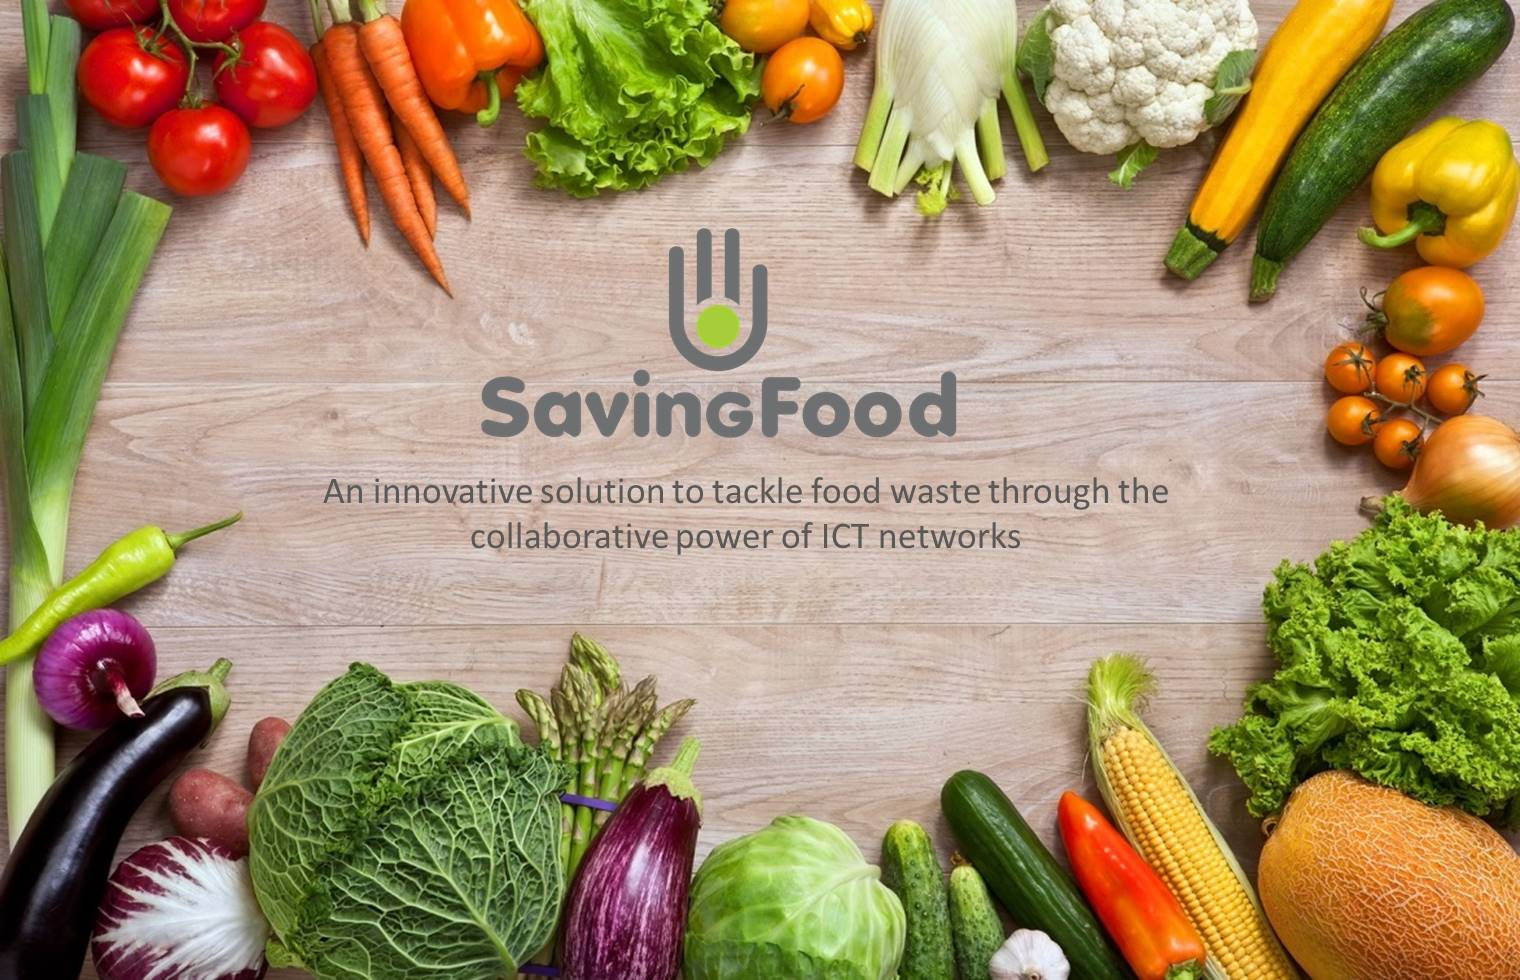 An innovative solution to tackle food waste through the collaborative power of ICT networks